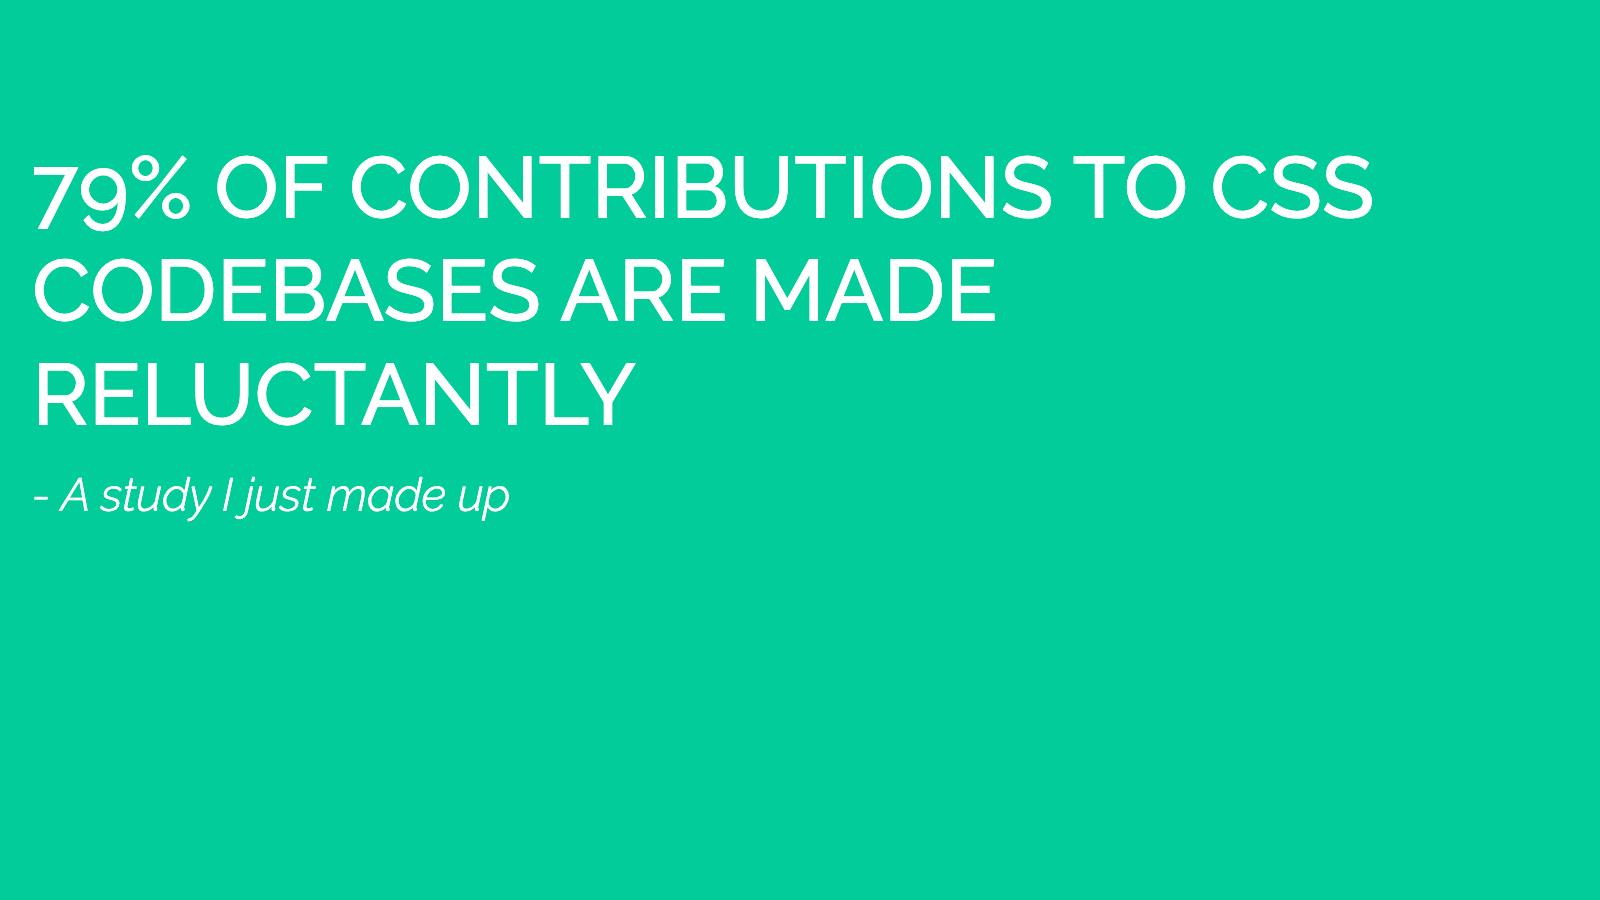 Slide content, A study I just made up indicates that 79% of contributions to CSS codebases are made reluctantly.